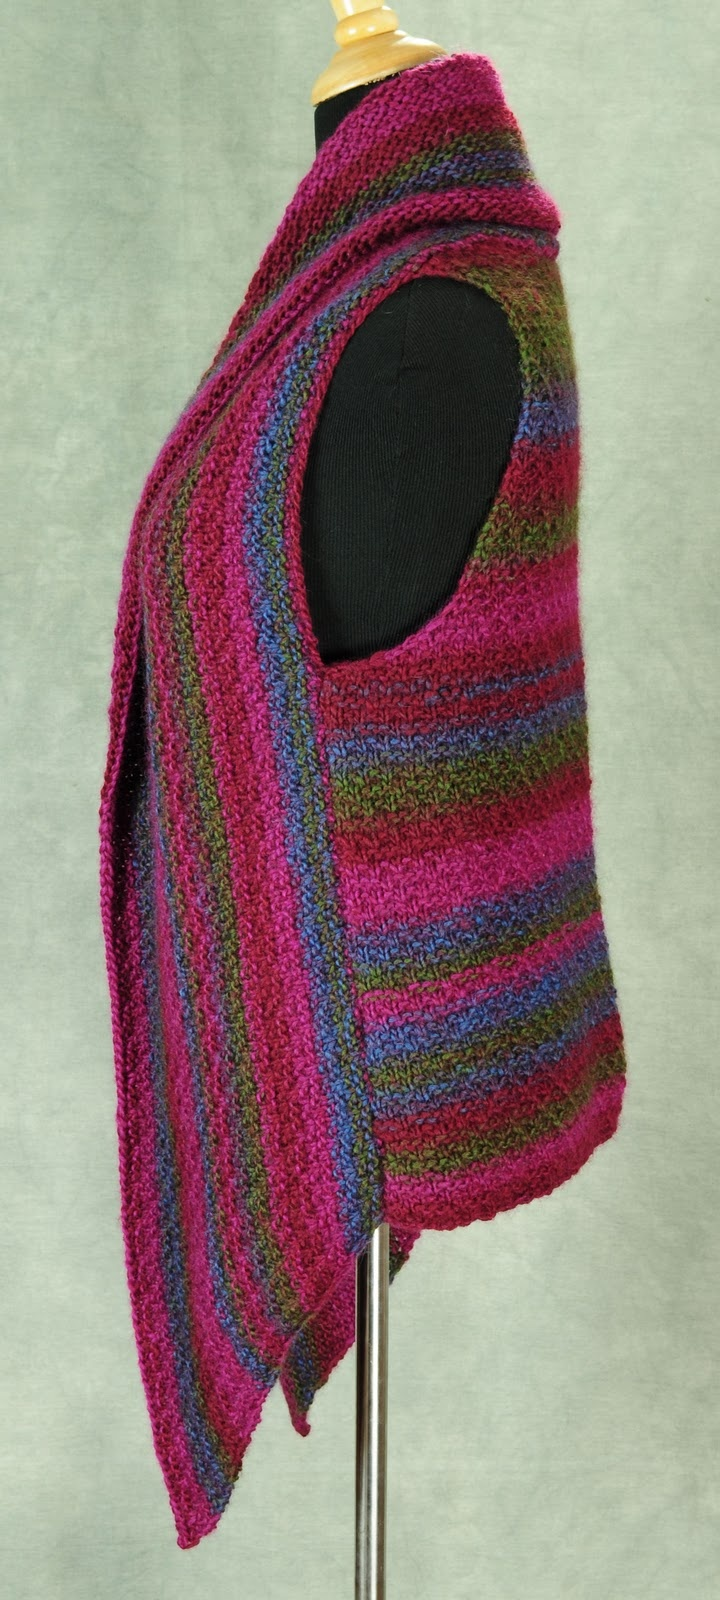 The Prudence Crowley Vest knitted, really interesting design  construction